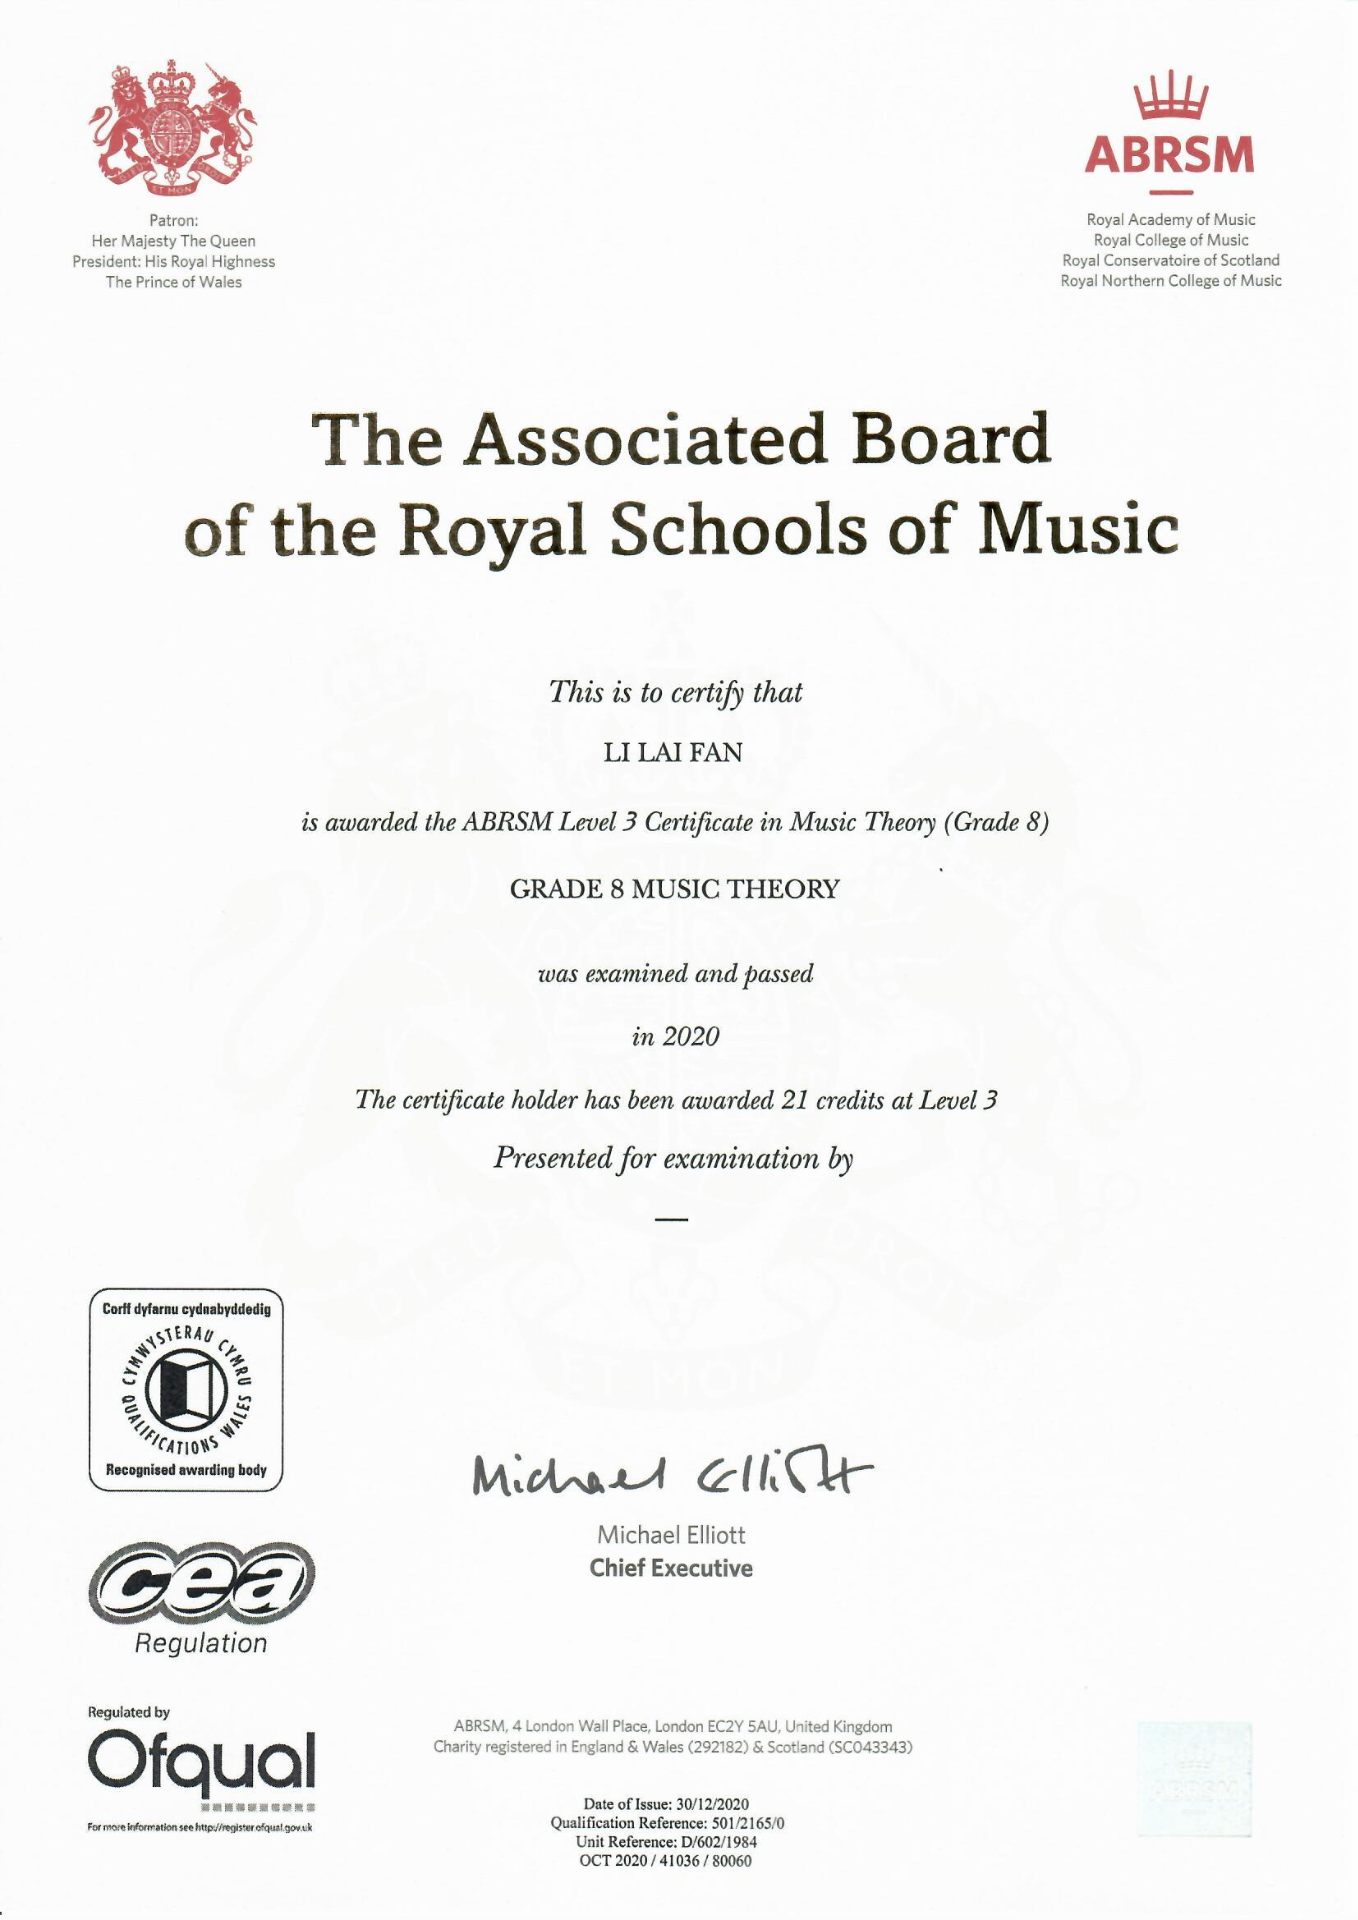 My ABRSM Music Theory Grade 8 cert.